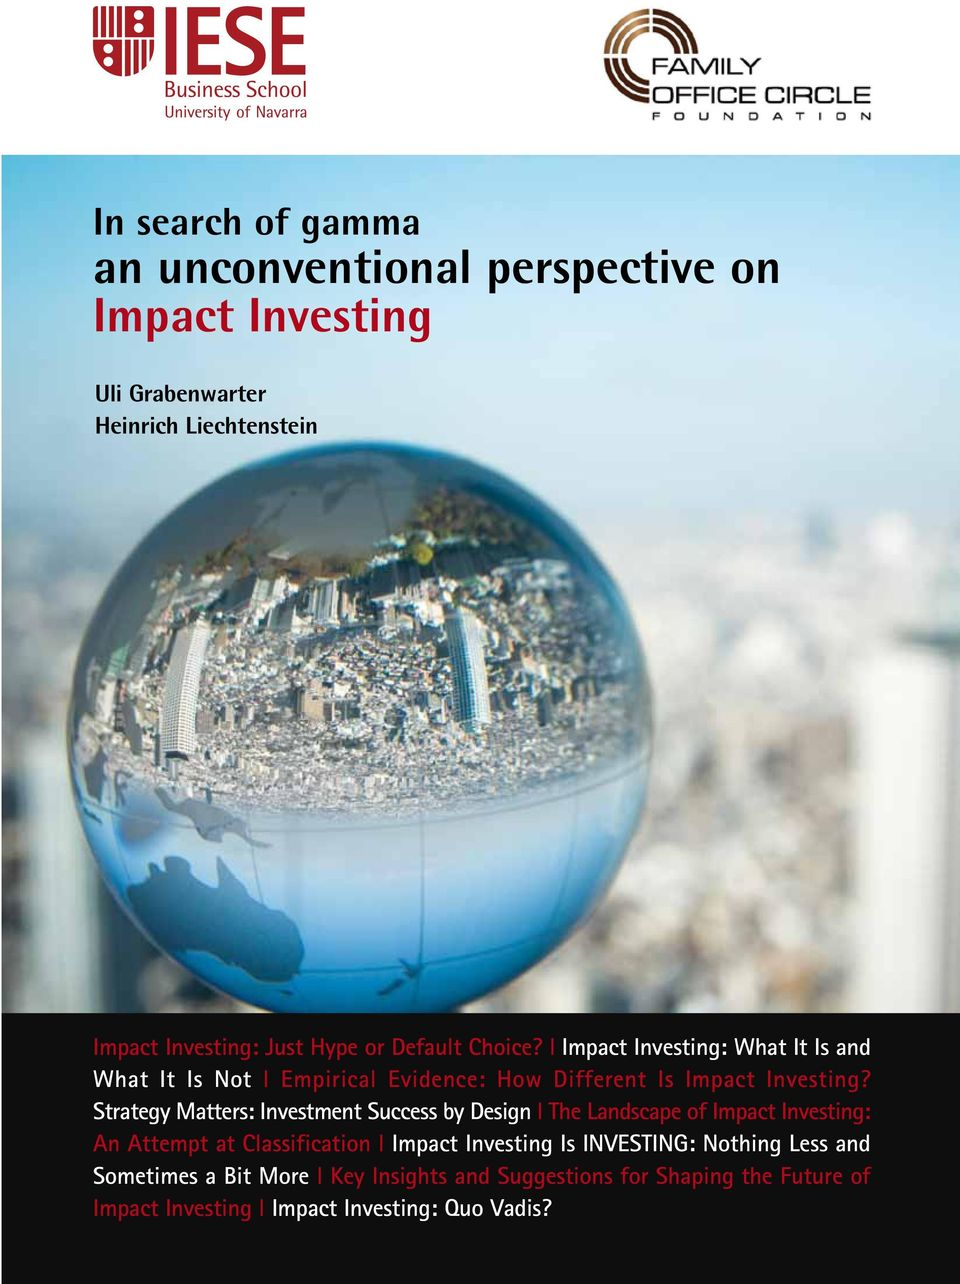 Strategy Matters: Investment Success by Design l The Landscape of Impact Investing: An Attempt at Classification l Impact Investing Is